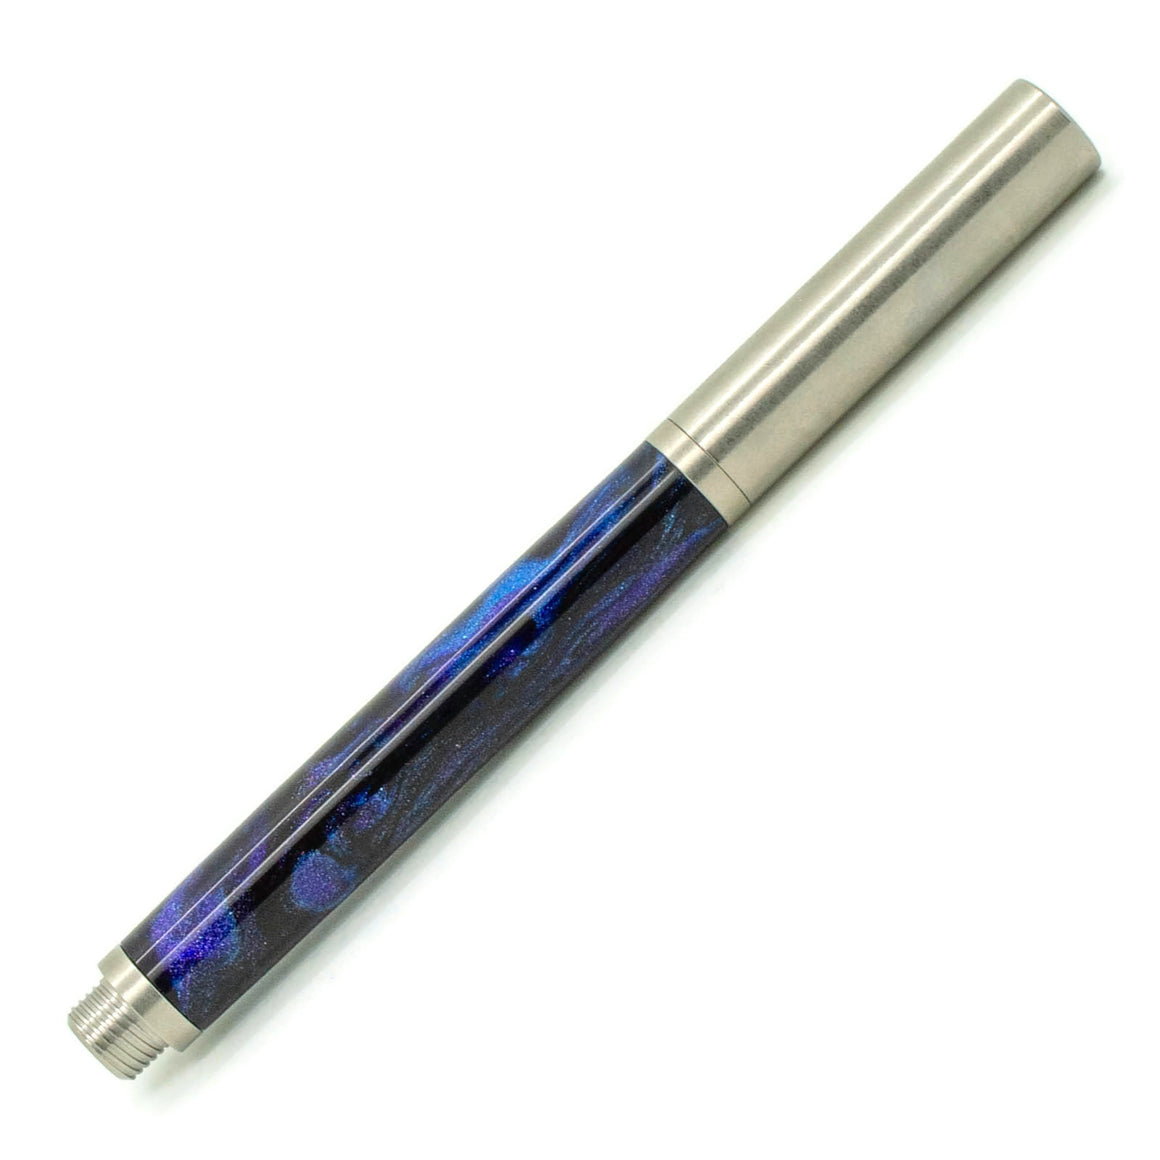 RAW Fountain Pen | Dark Andromeda by Diamondcast | Stainless Steel